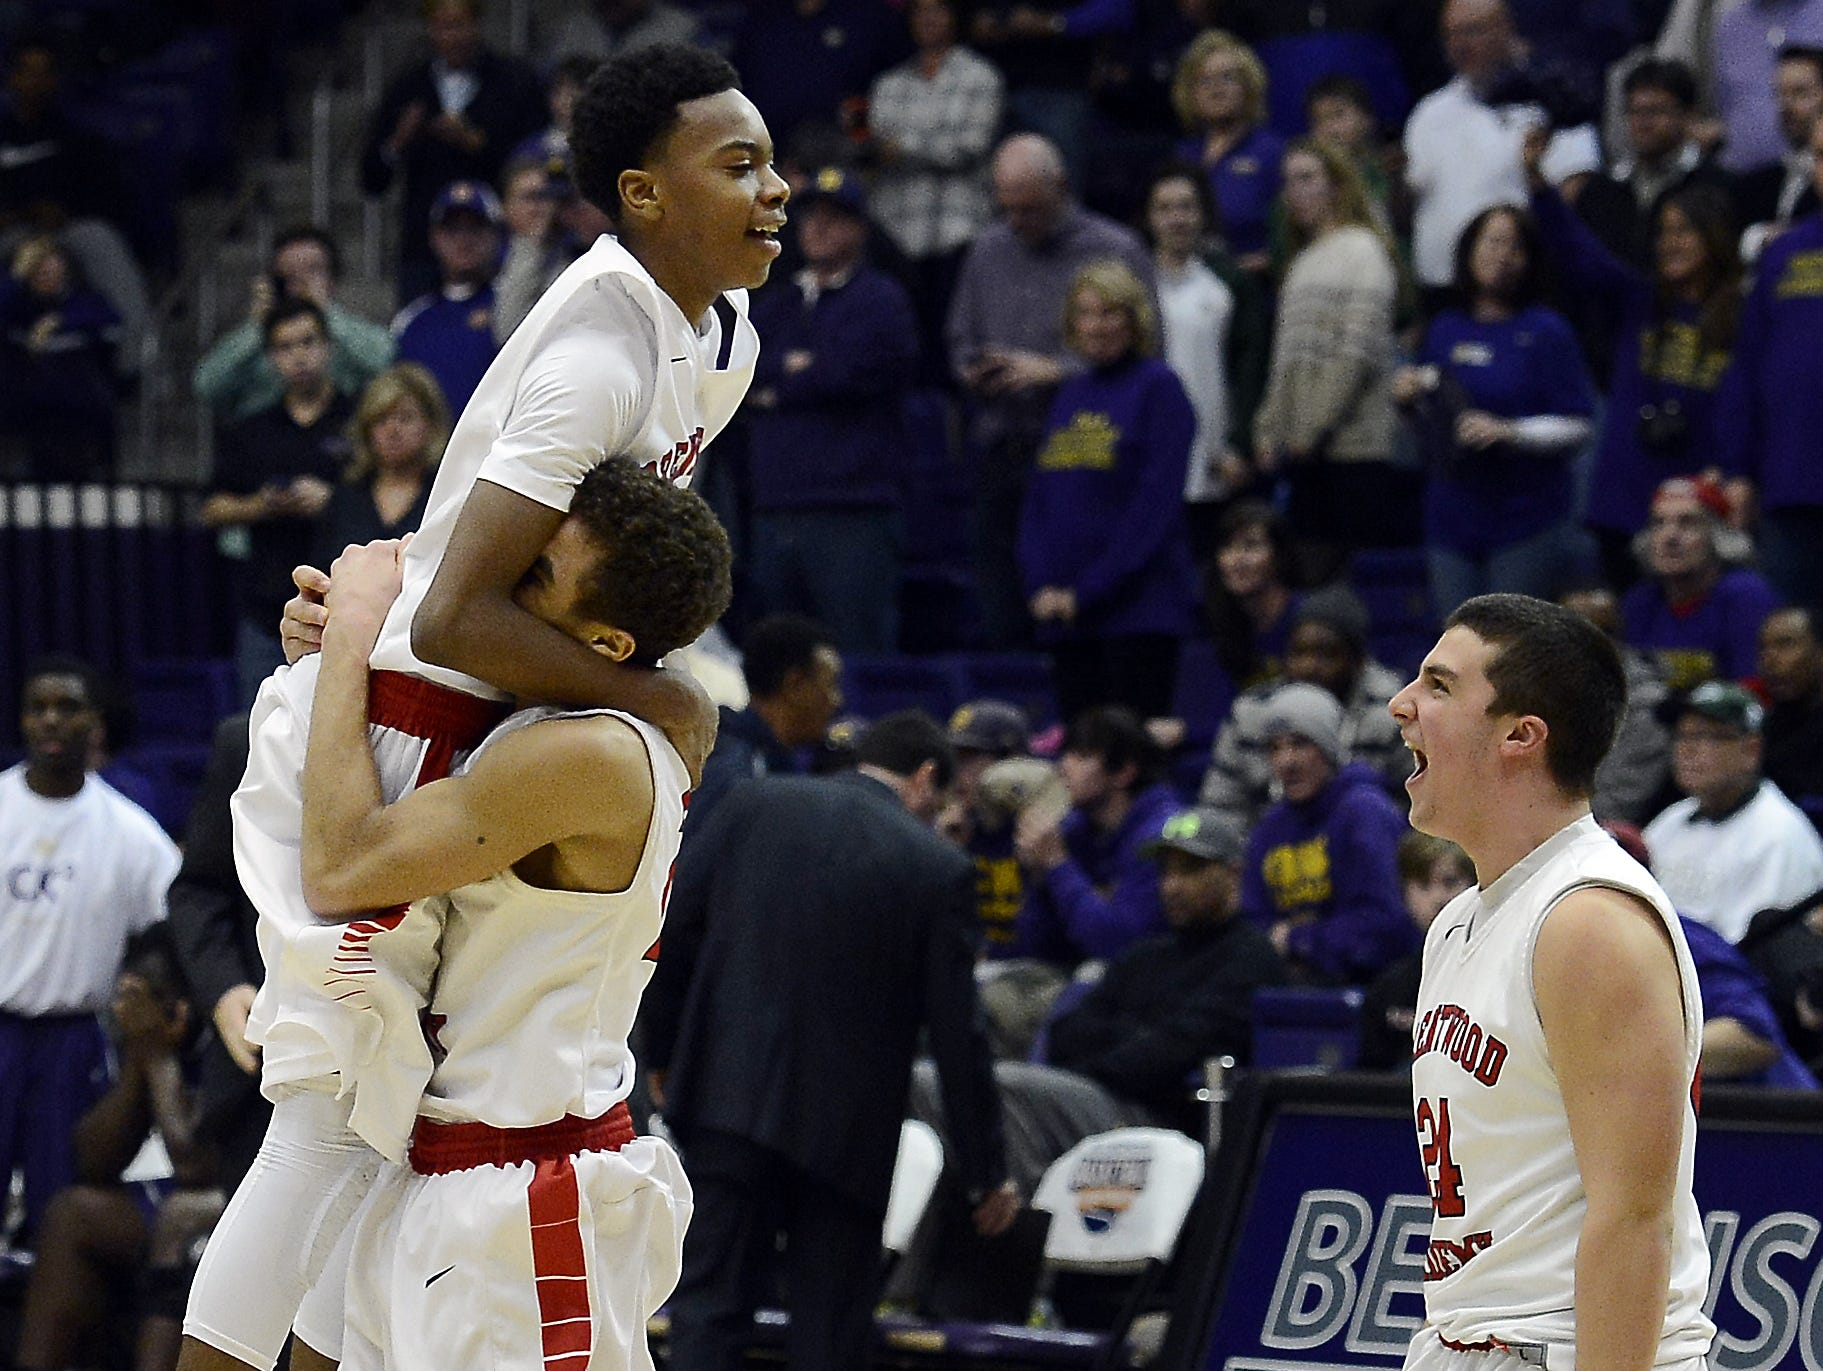 Brentwood Academy's Darius Garland (top), Cam Johnson (holding Garland) and Jack McDonald (right) celebrate after last year's state championship victory.